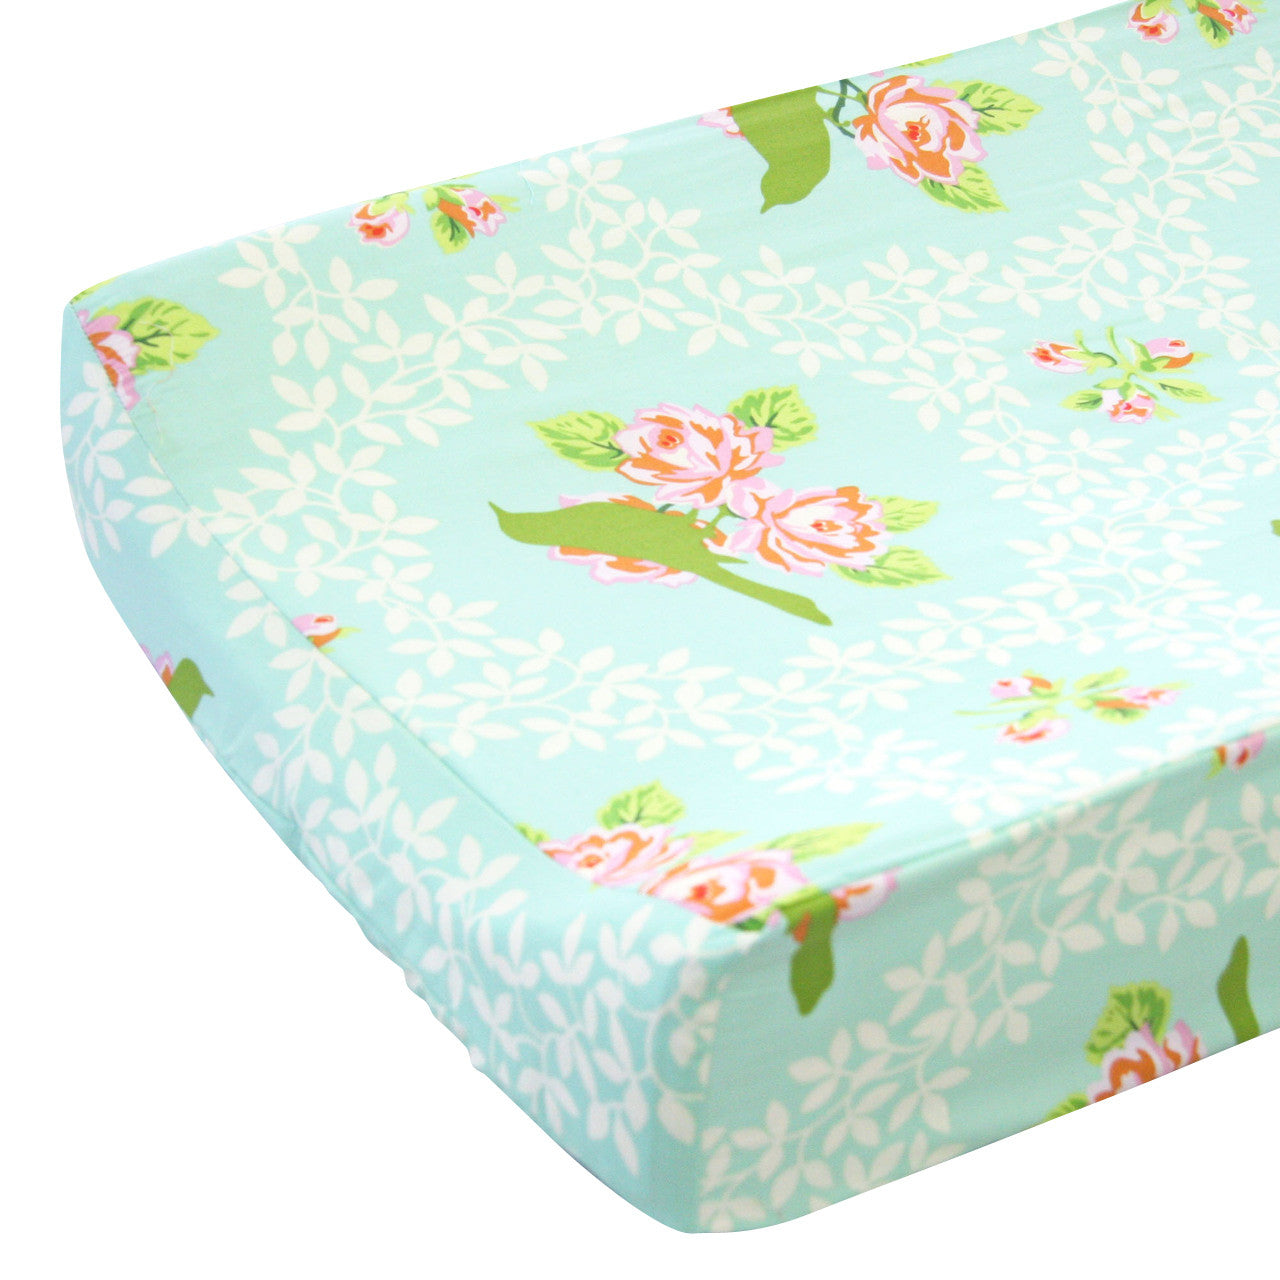 Vintage Songbird - Changing Pad Cover